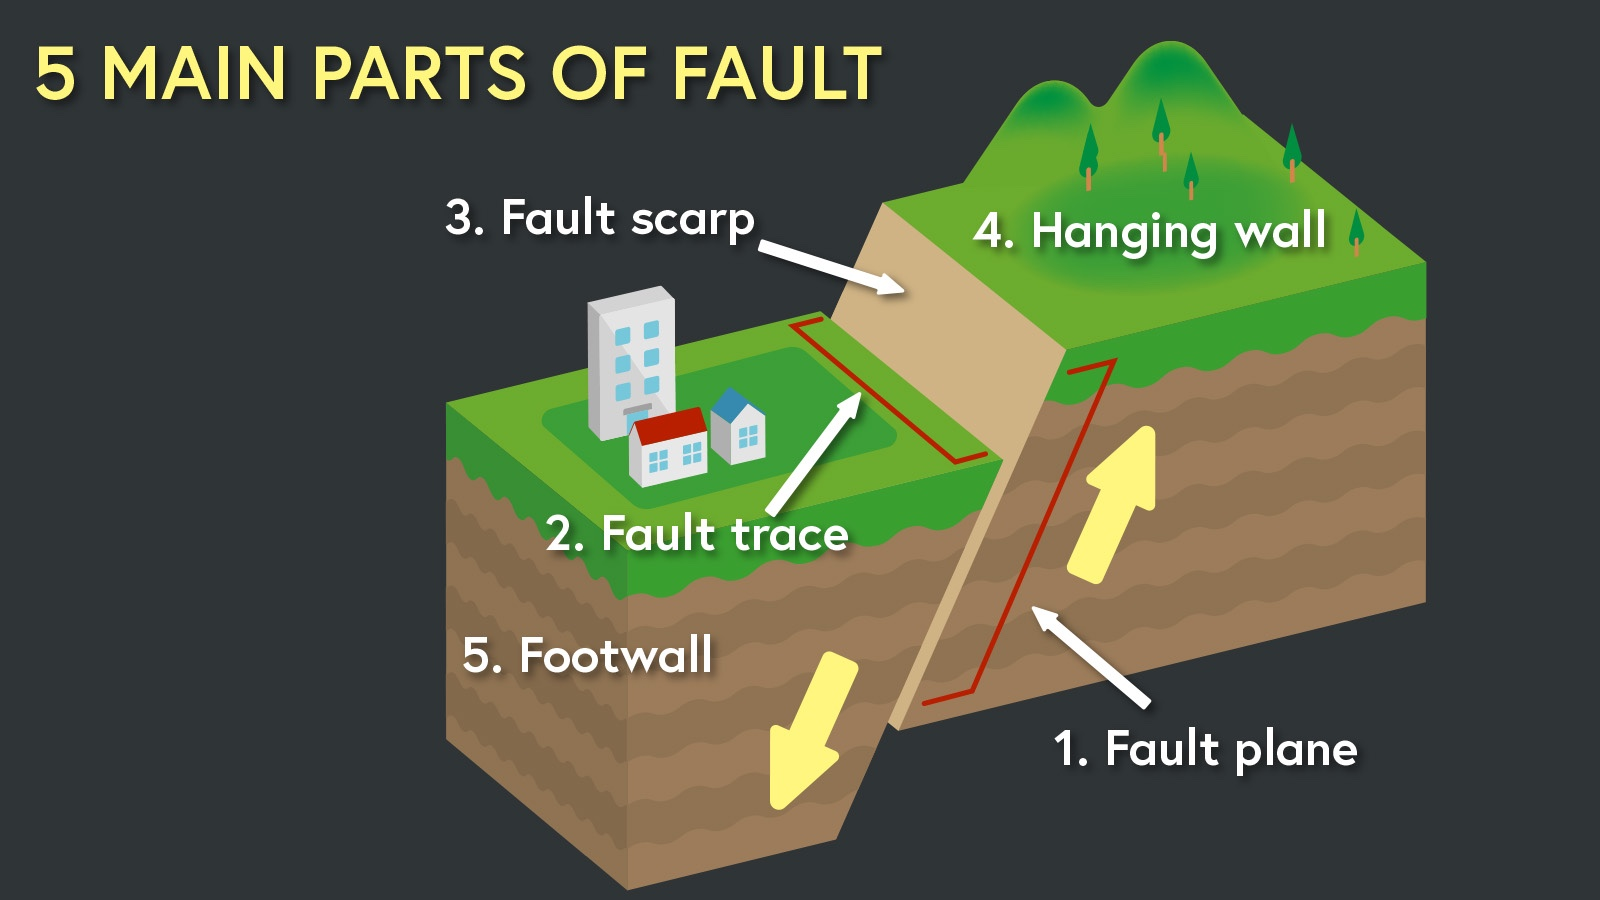 5 main parts of fault